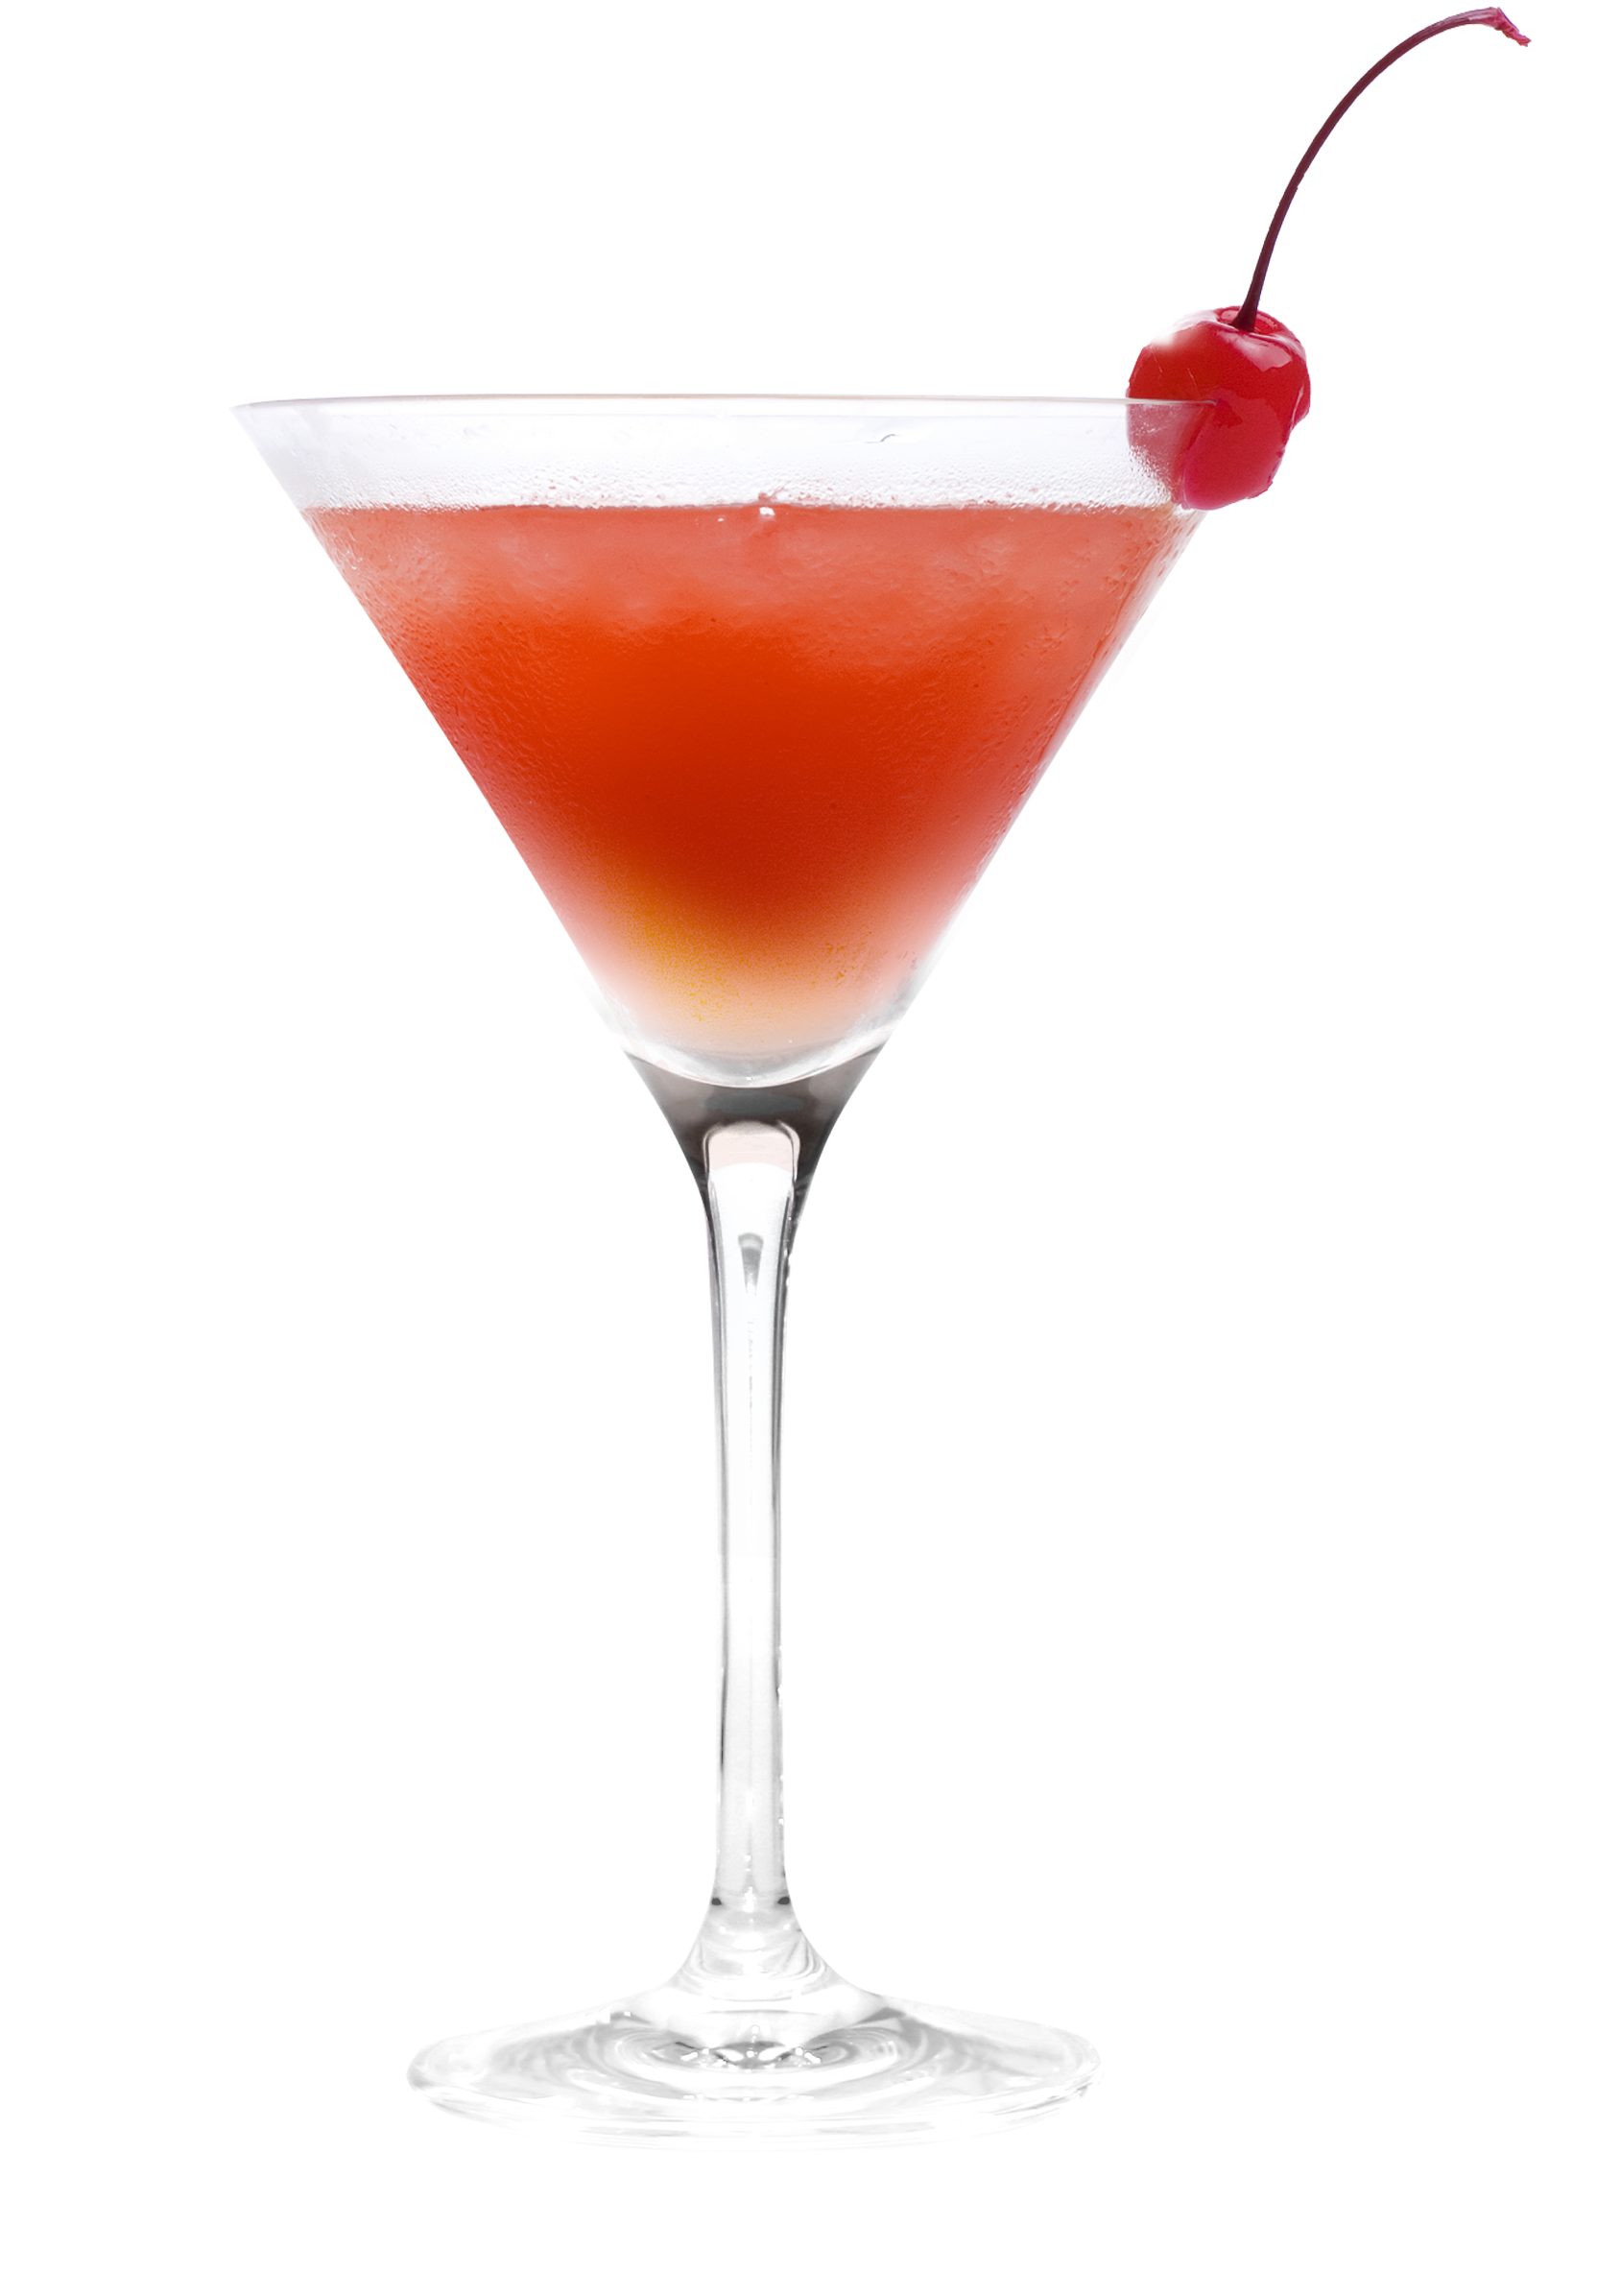 Drink Png 3 PNG Image - Drinks PNG